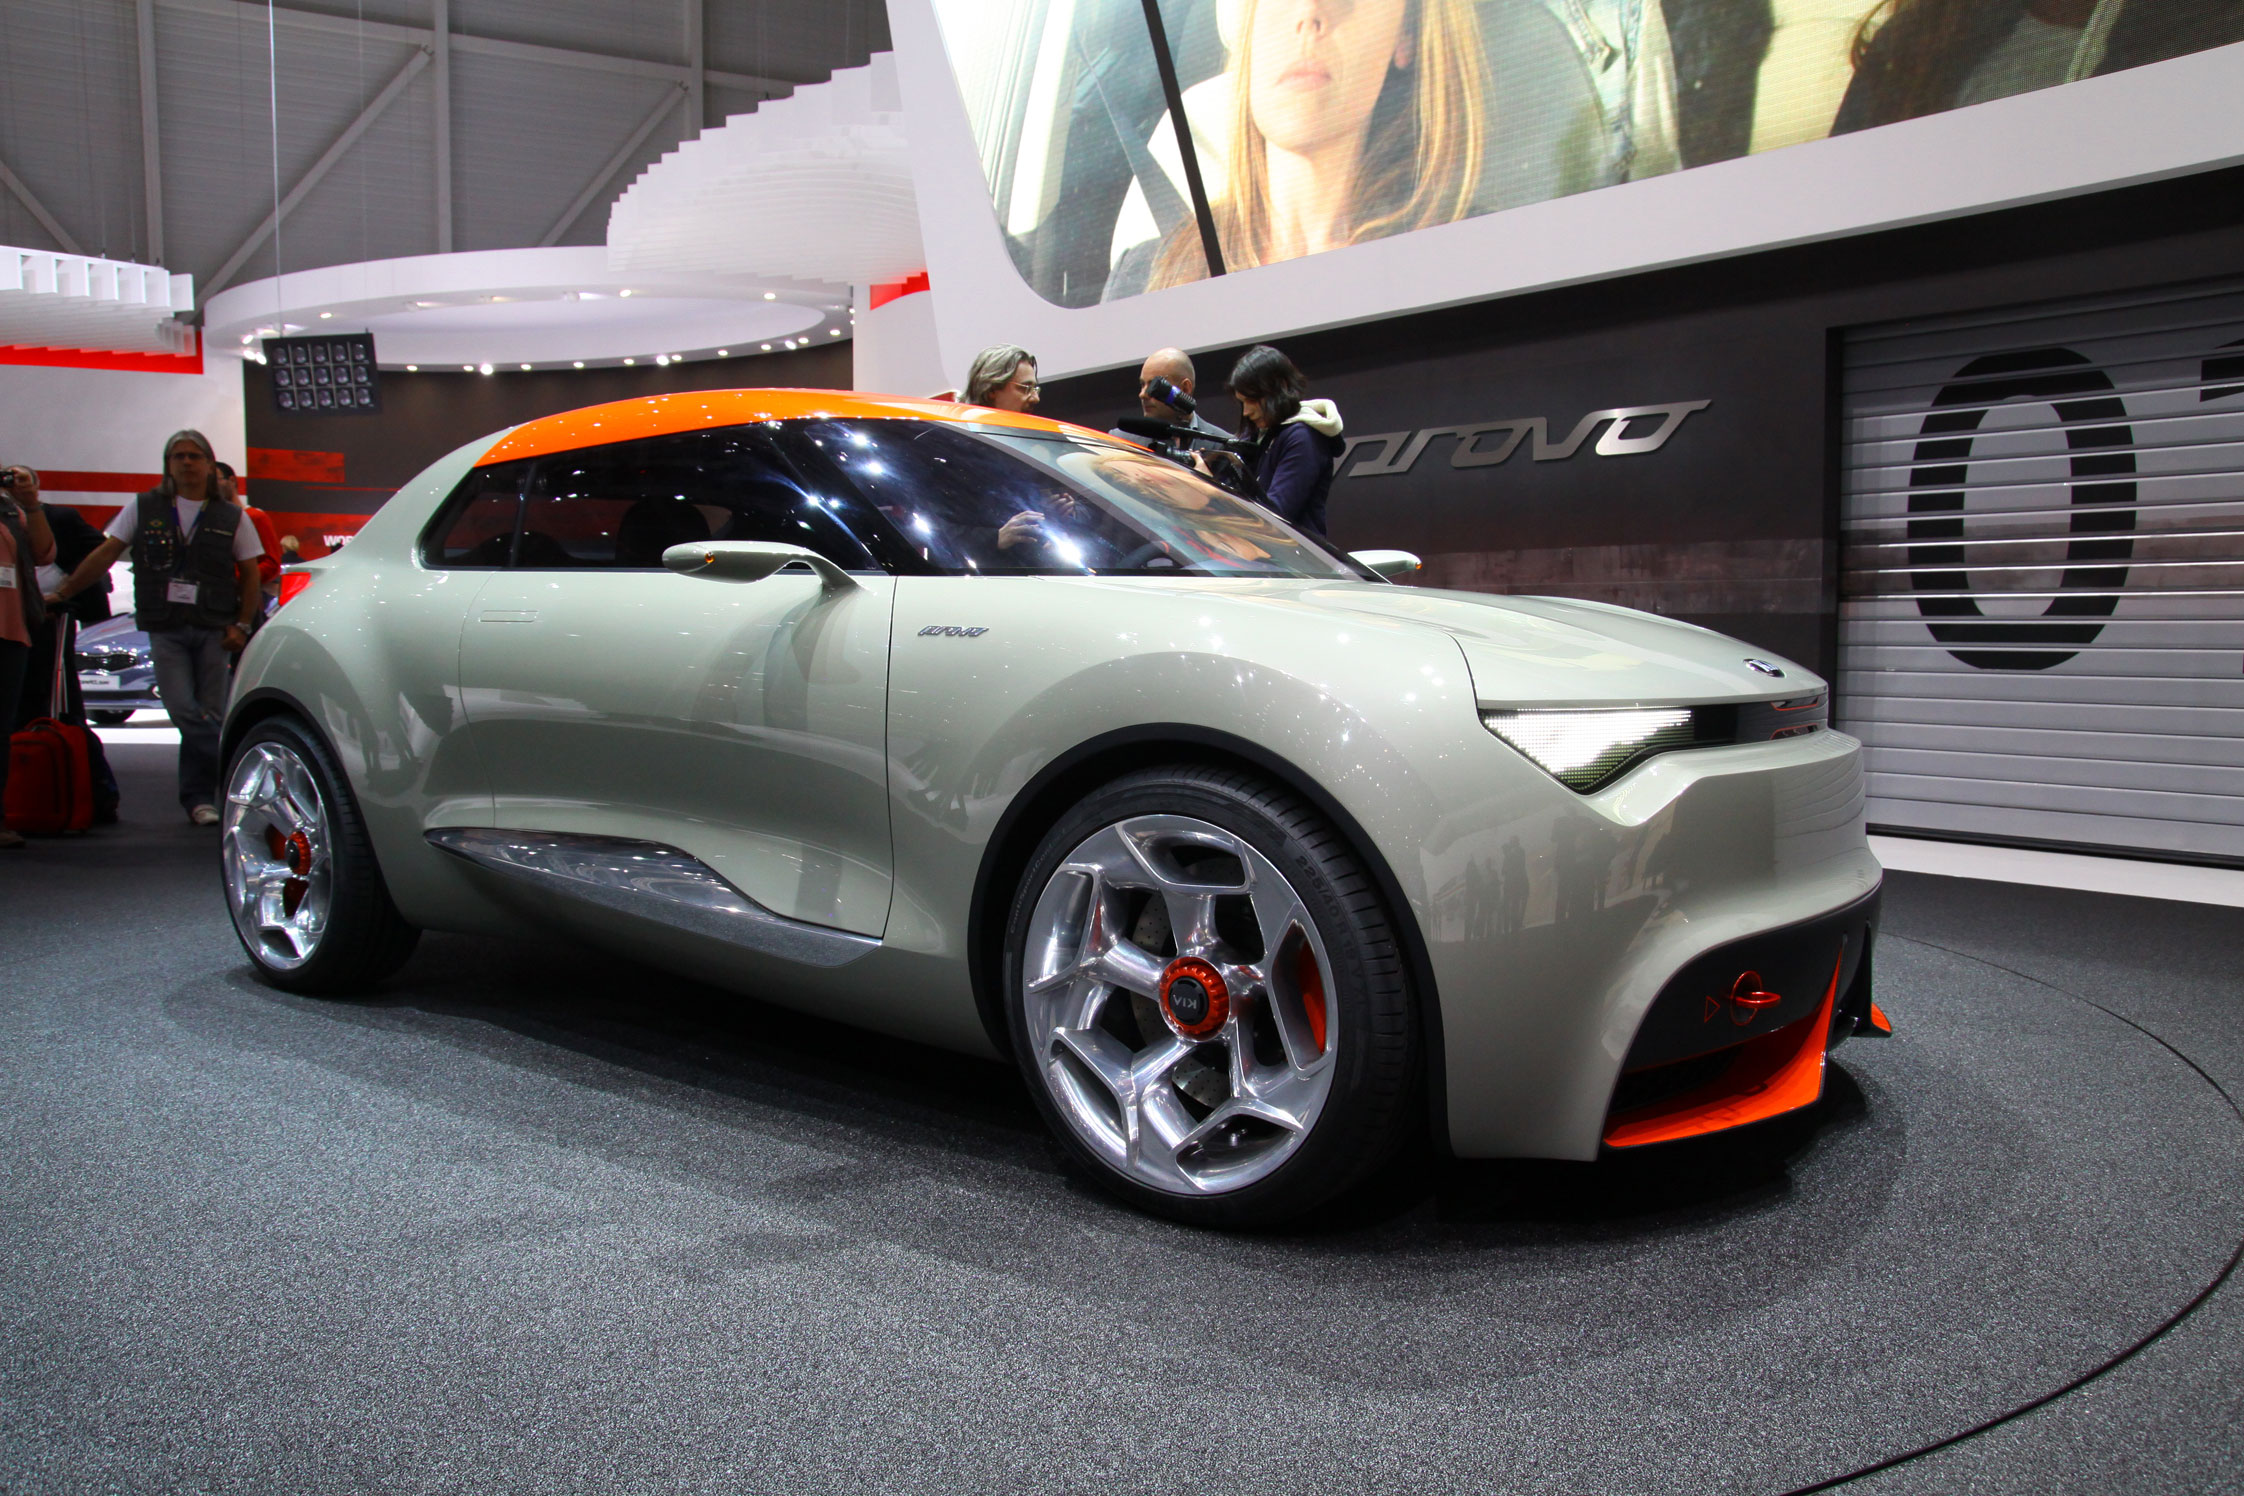 Download image Kia Provo Concept Car PC, Android, iPhone and iPad